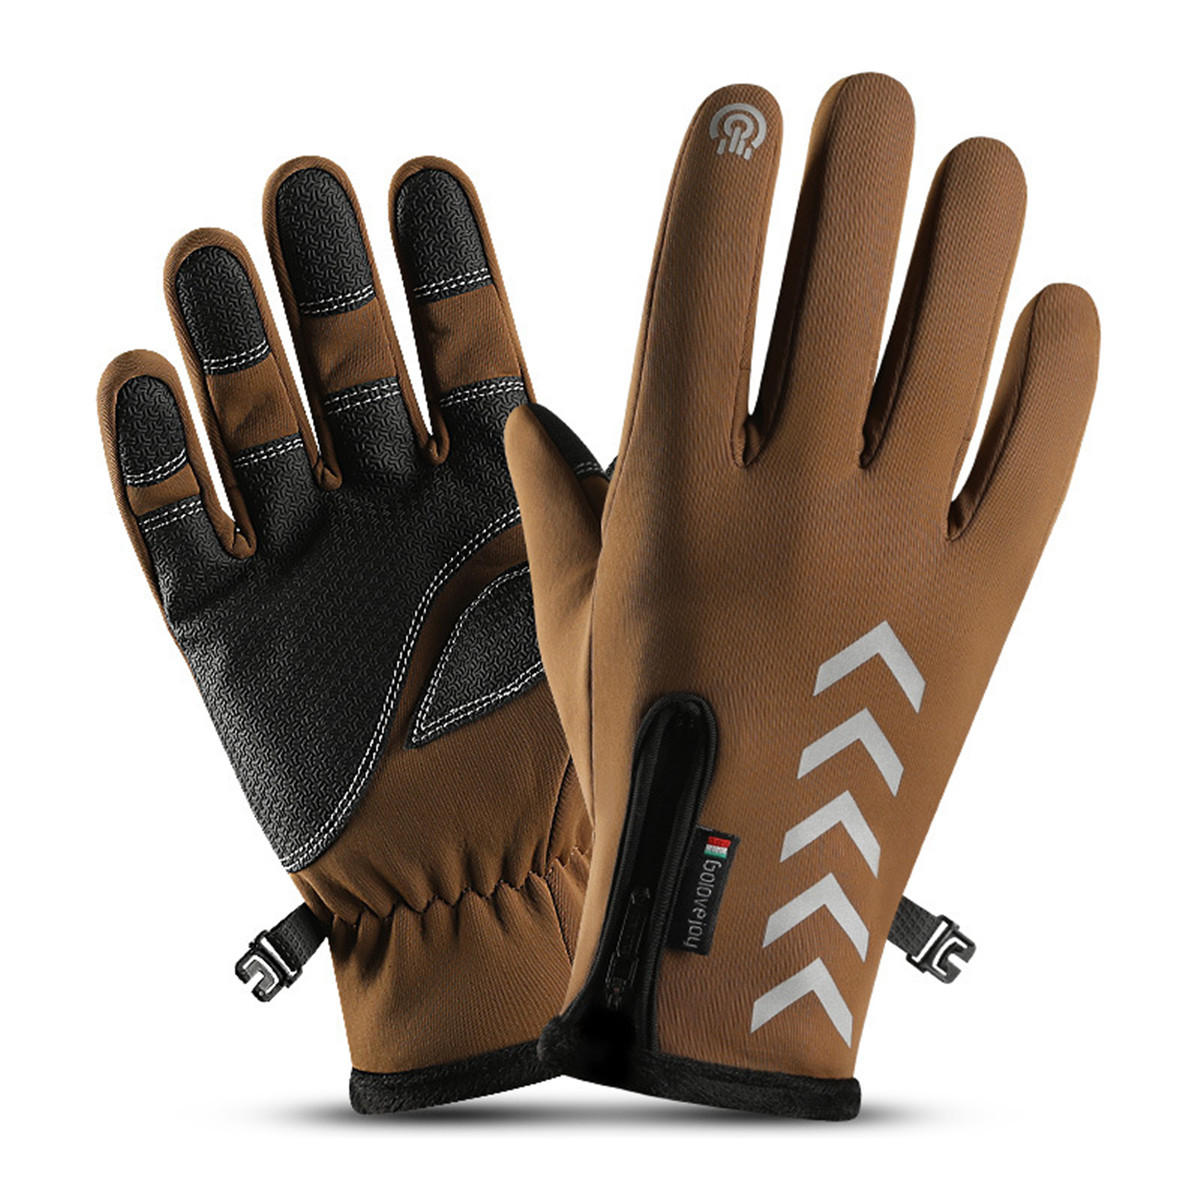 Wind-stoper Gloves Anti-slip Windproof Thermal Warm Touchscreen Breathable Gloves фото